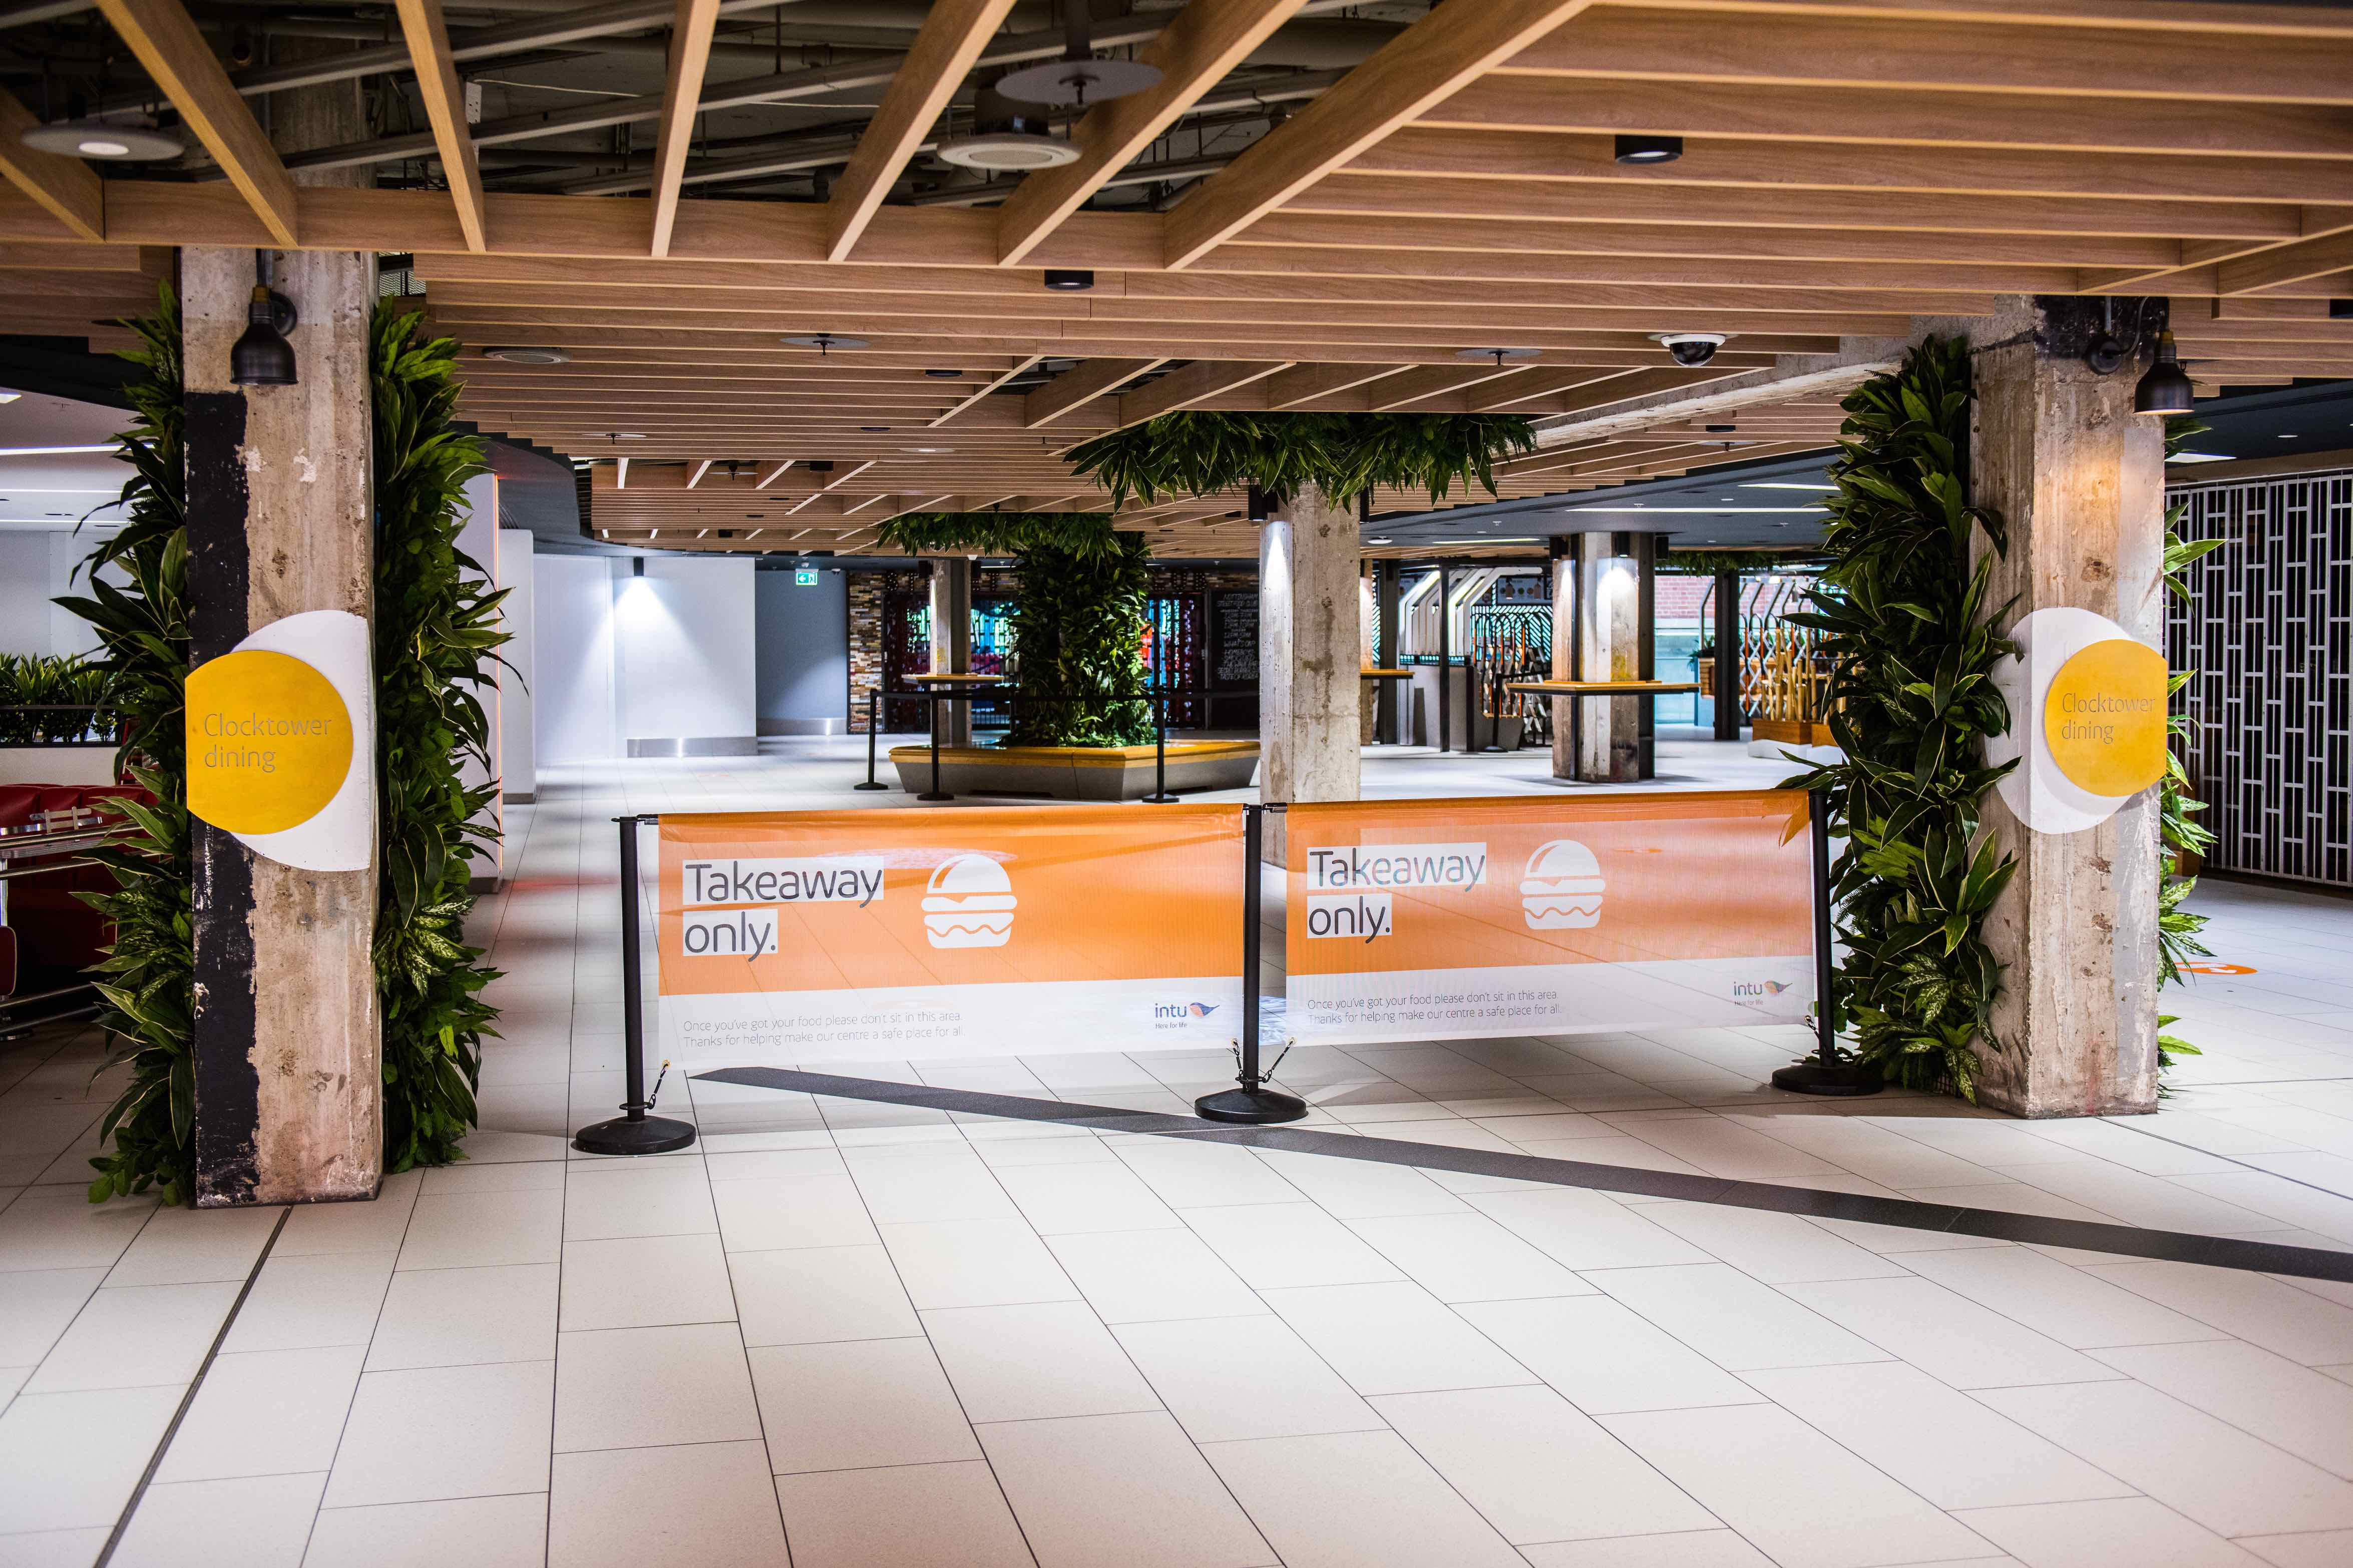 INTU VICTORIA CENTRE PROVIDES MORE DETAILS ON HOW IT WILL REMAIN COVID-SECURE